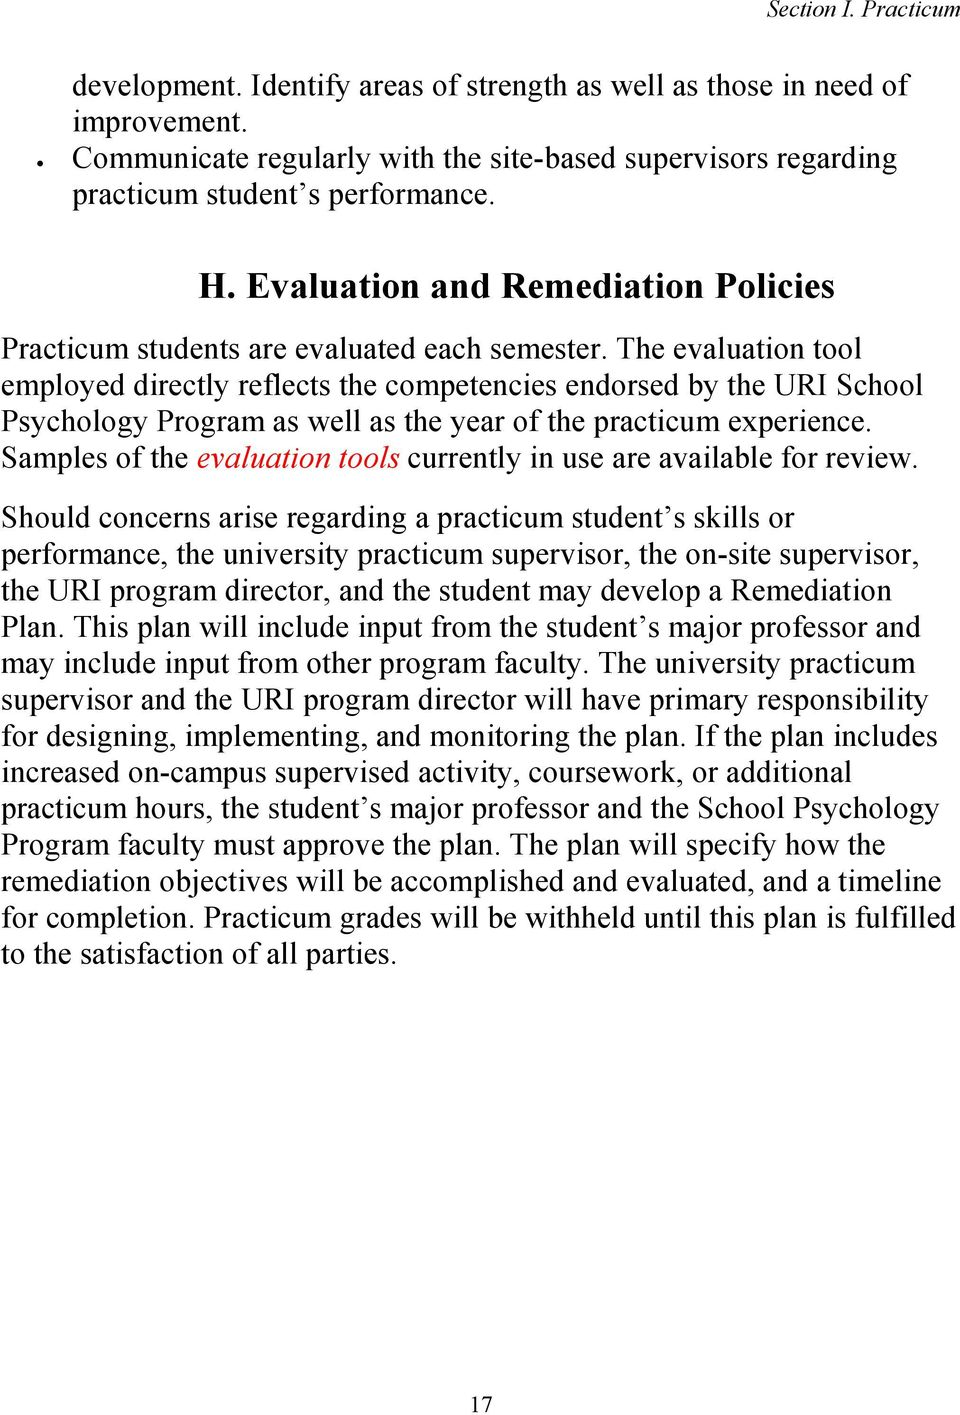 The evaluation tool employed directly reflects the competencies endorsed by the URI School Psychology Program as well as the year of the practicum experience.